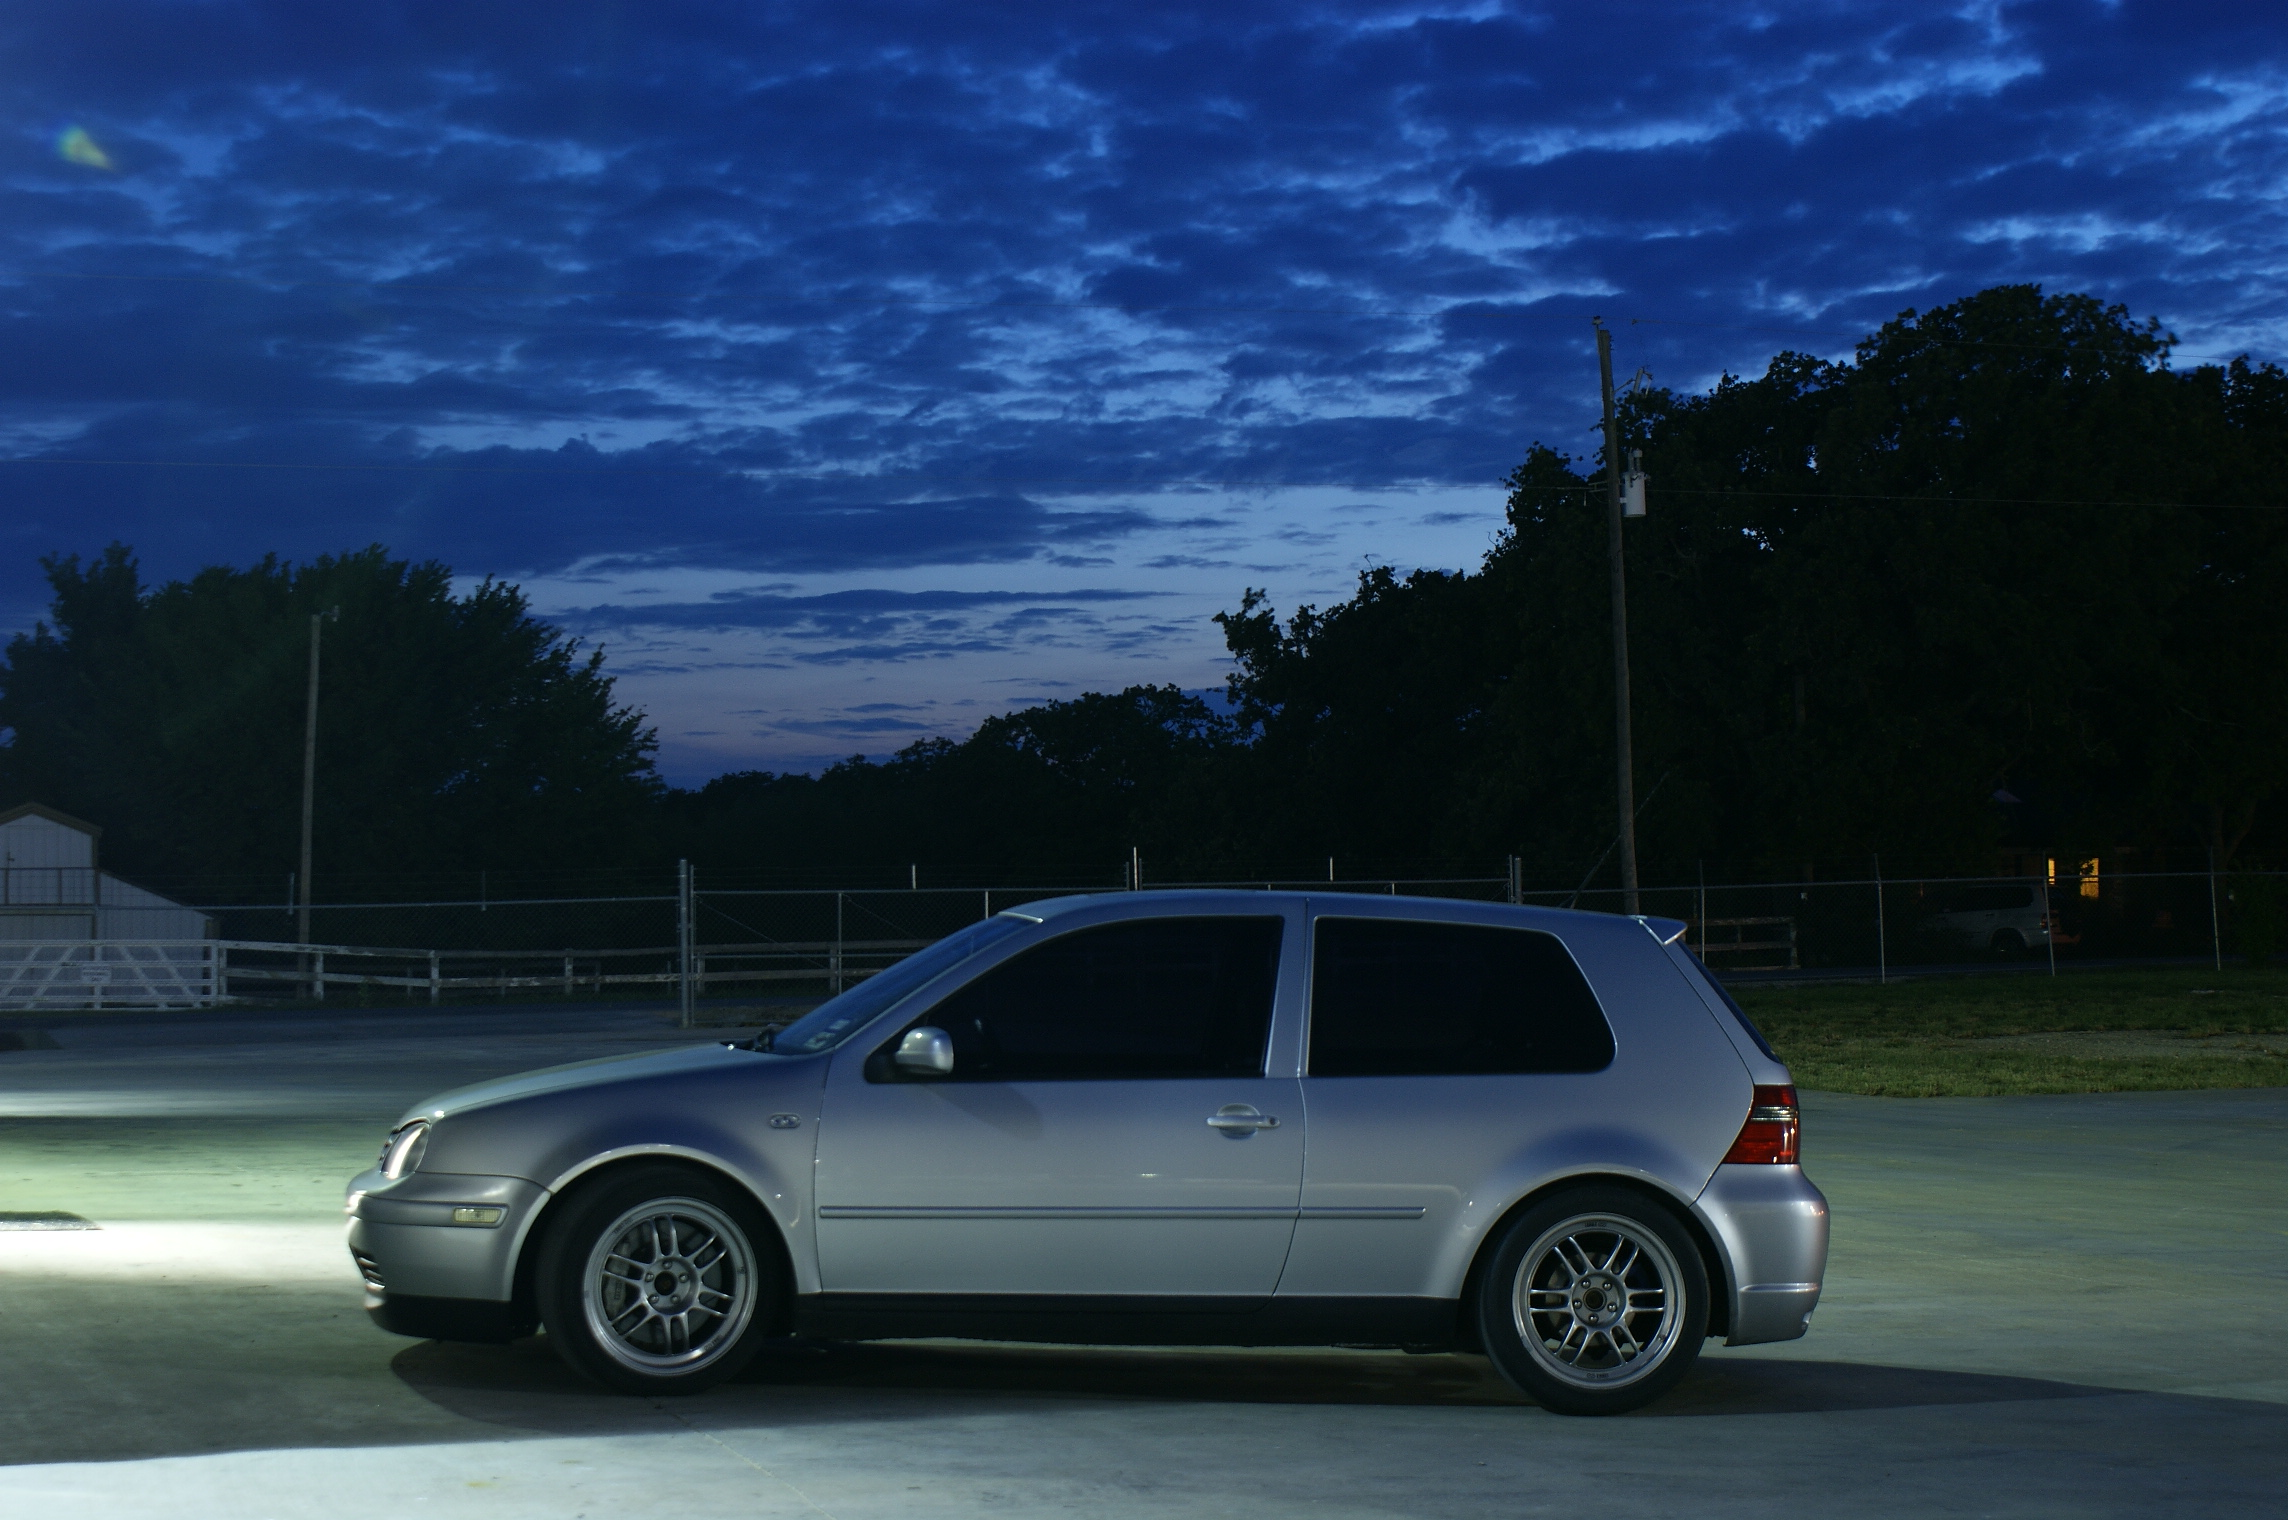 an MK4 in the U.S.